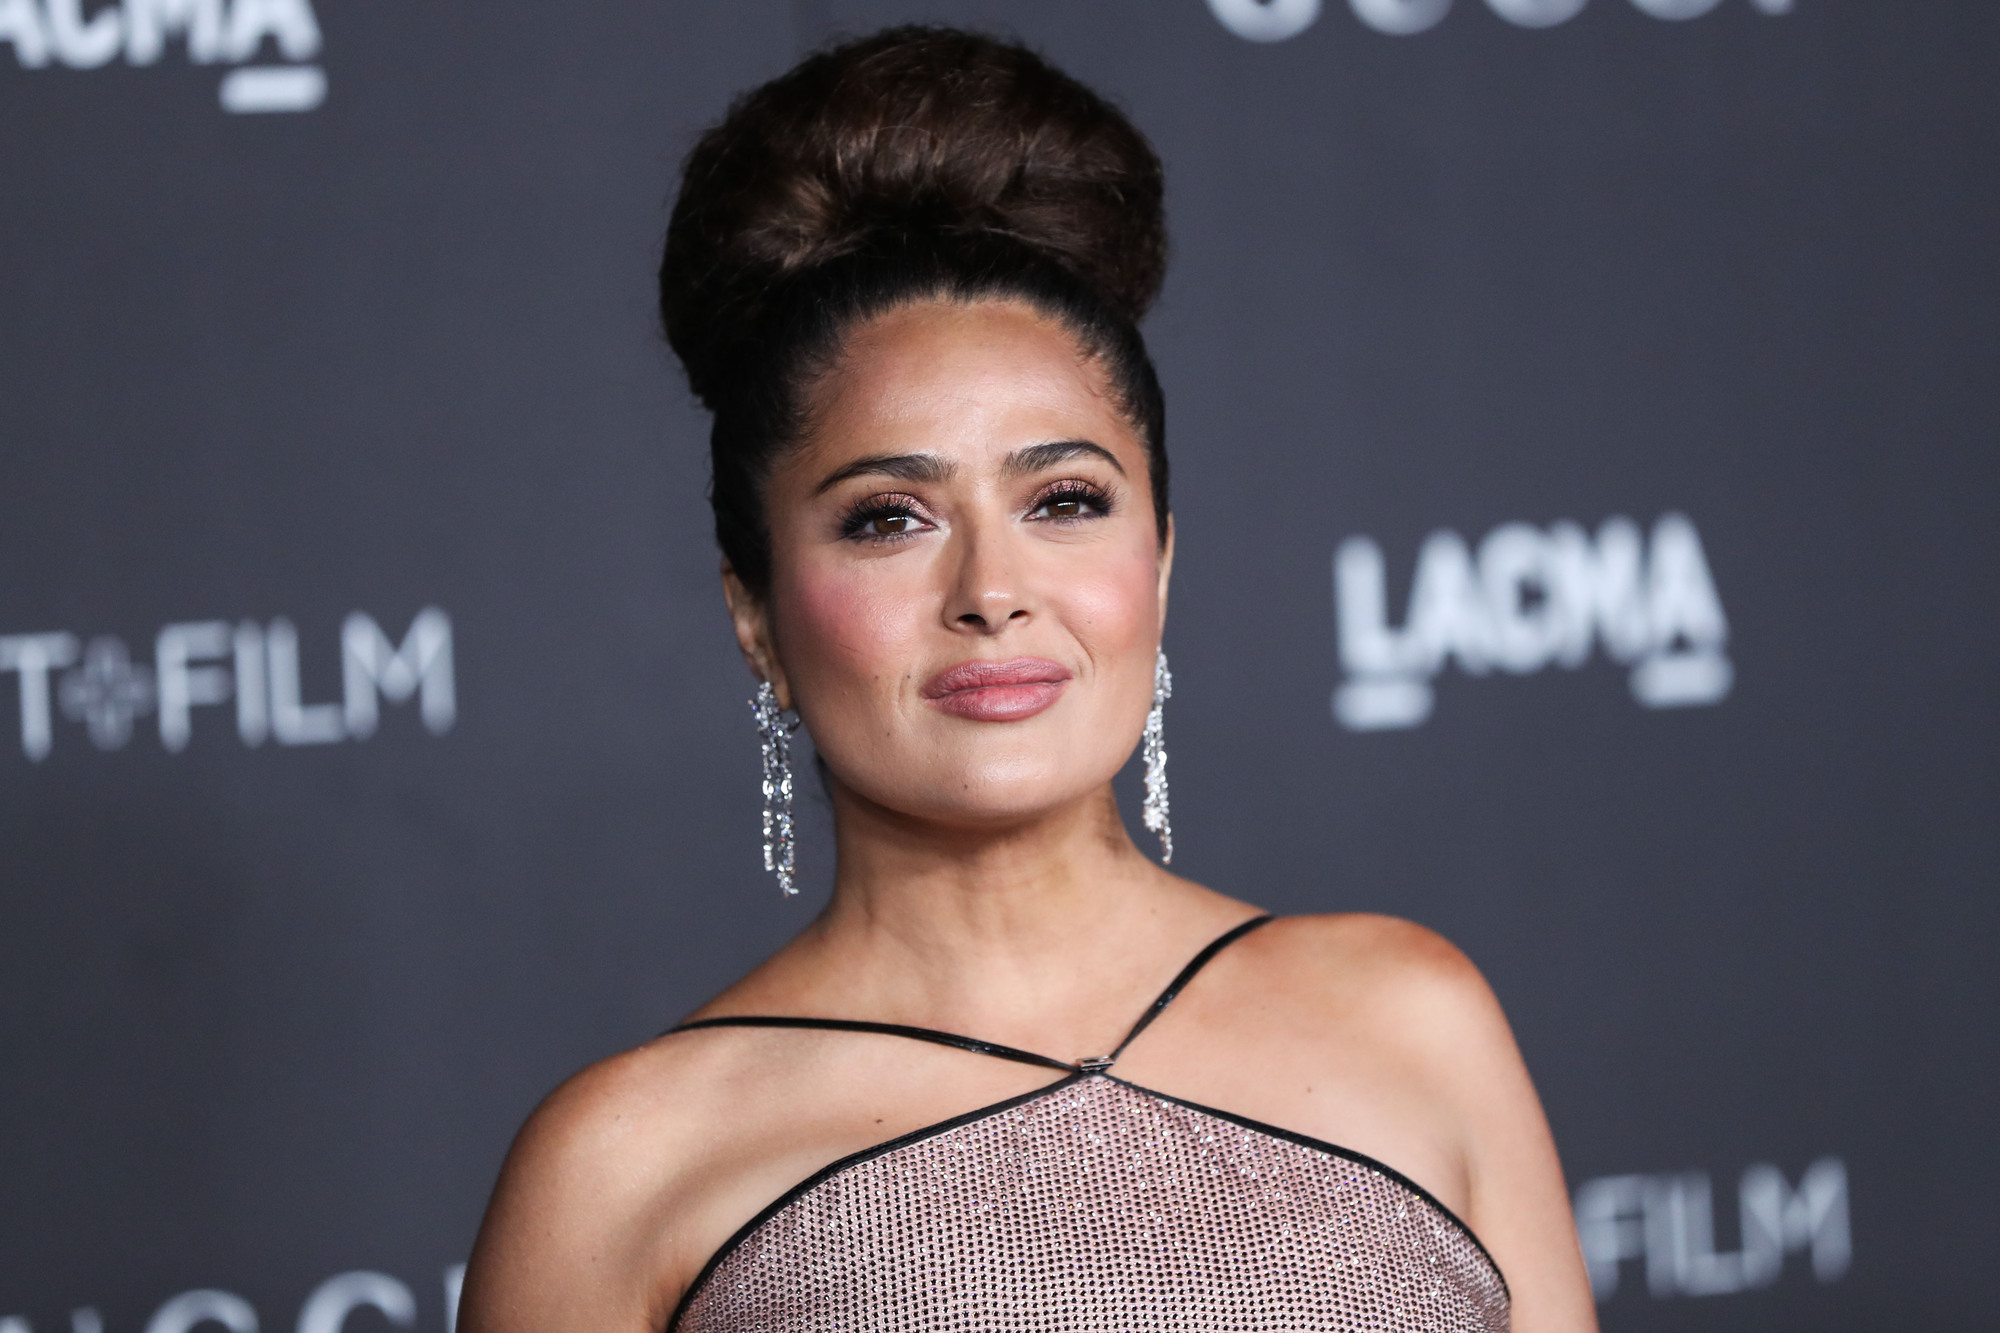 Salma Hayek, Kate Winslet and other stars who regret going 'full Monty'